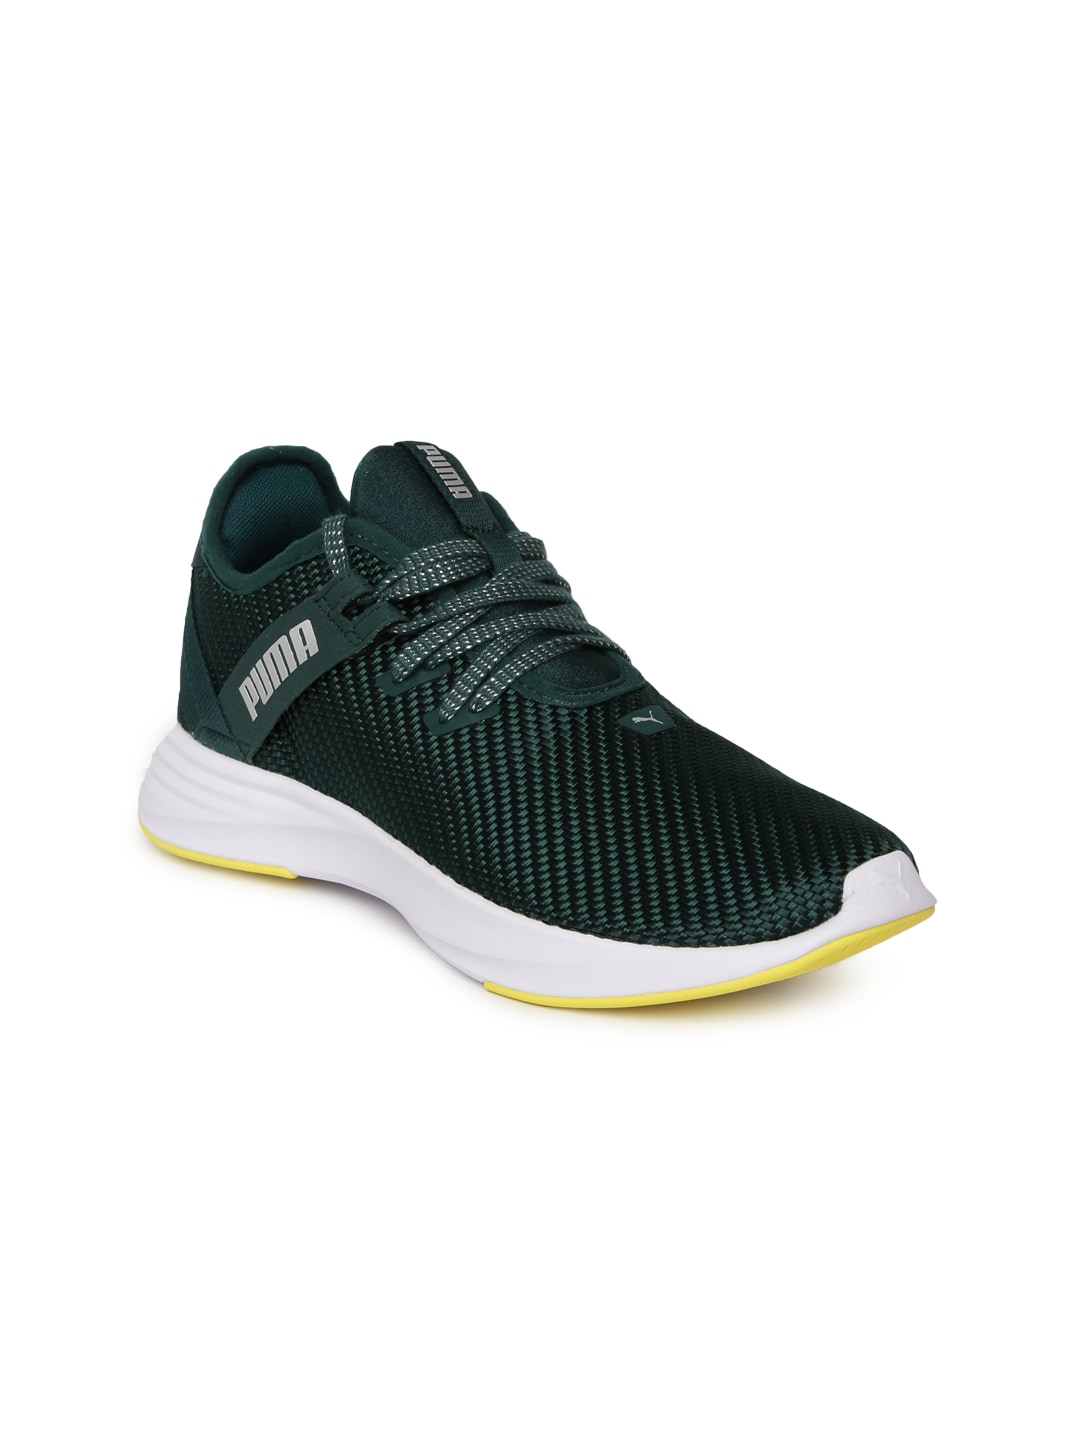 ba666948 Puma Women Green Radiate XT Cosmic Training Shoes